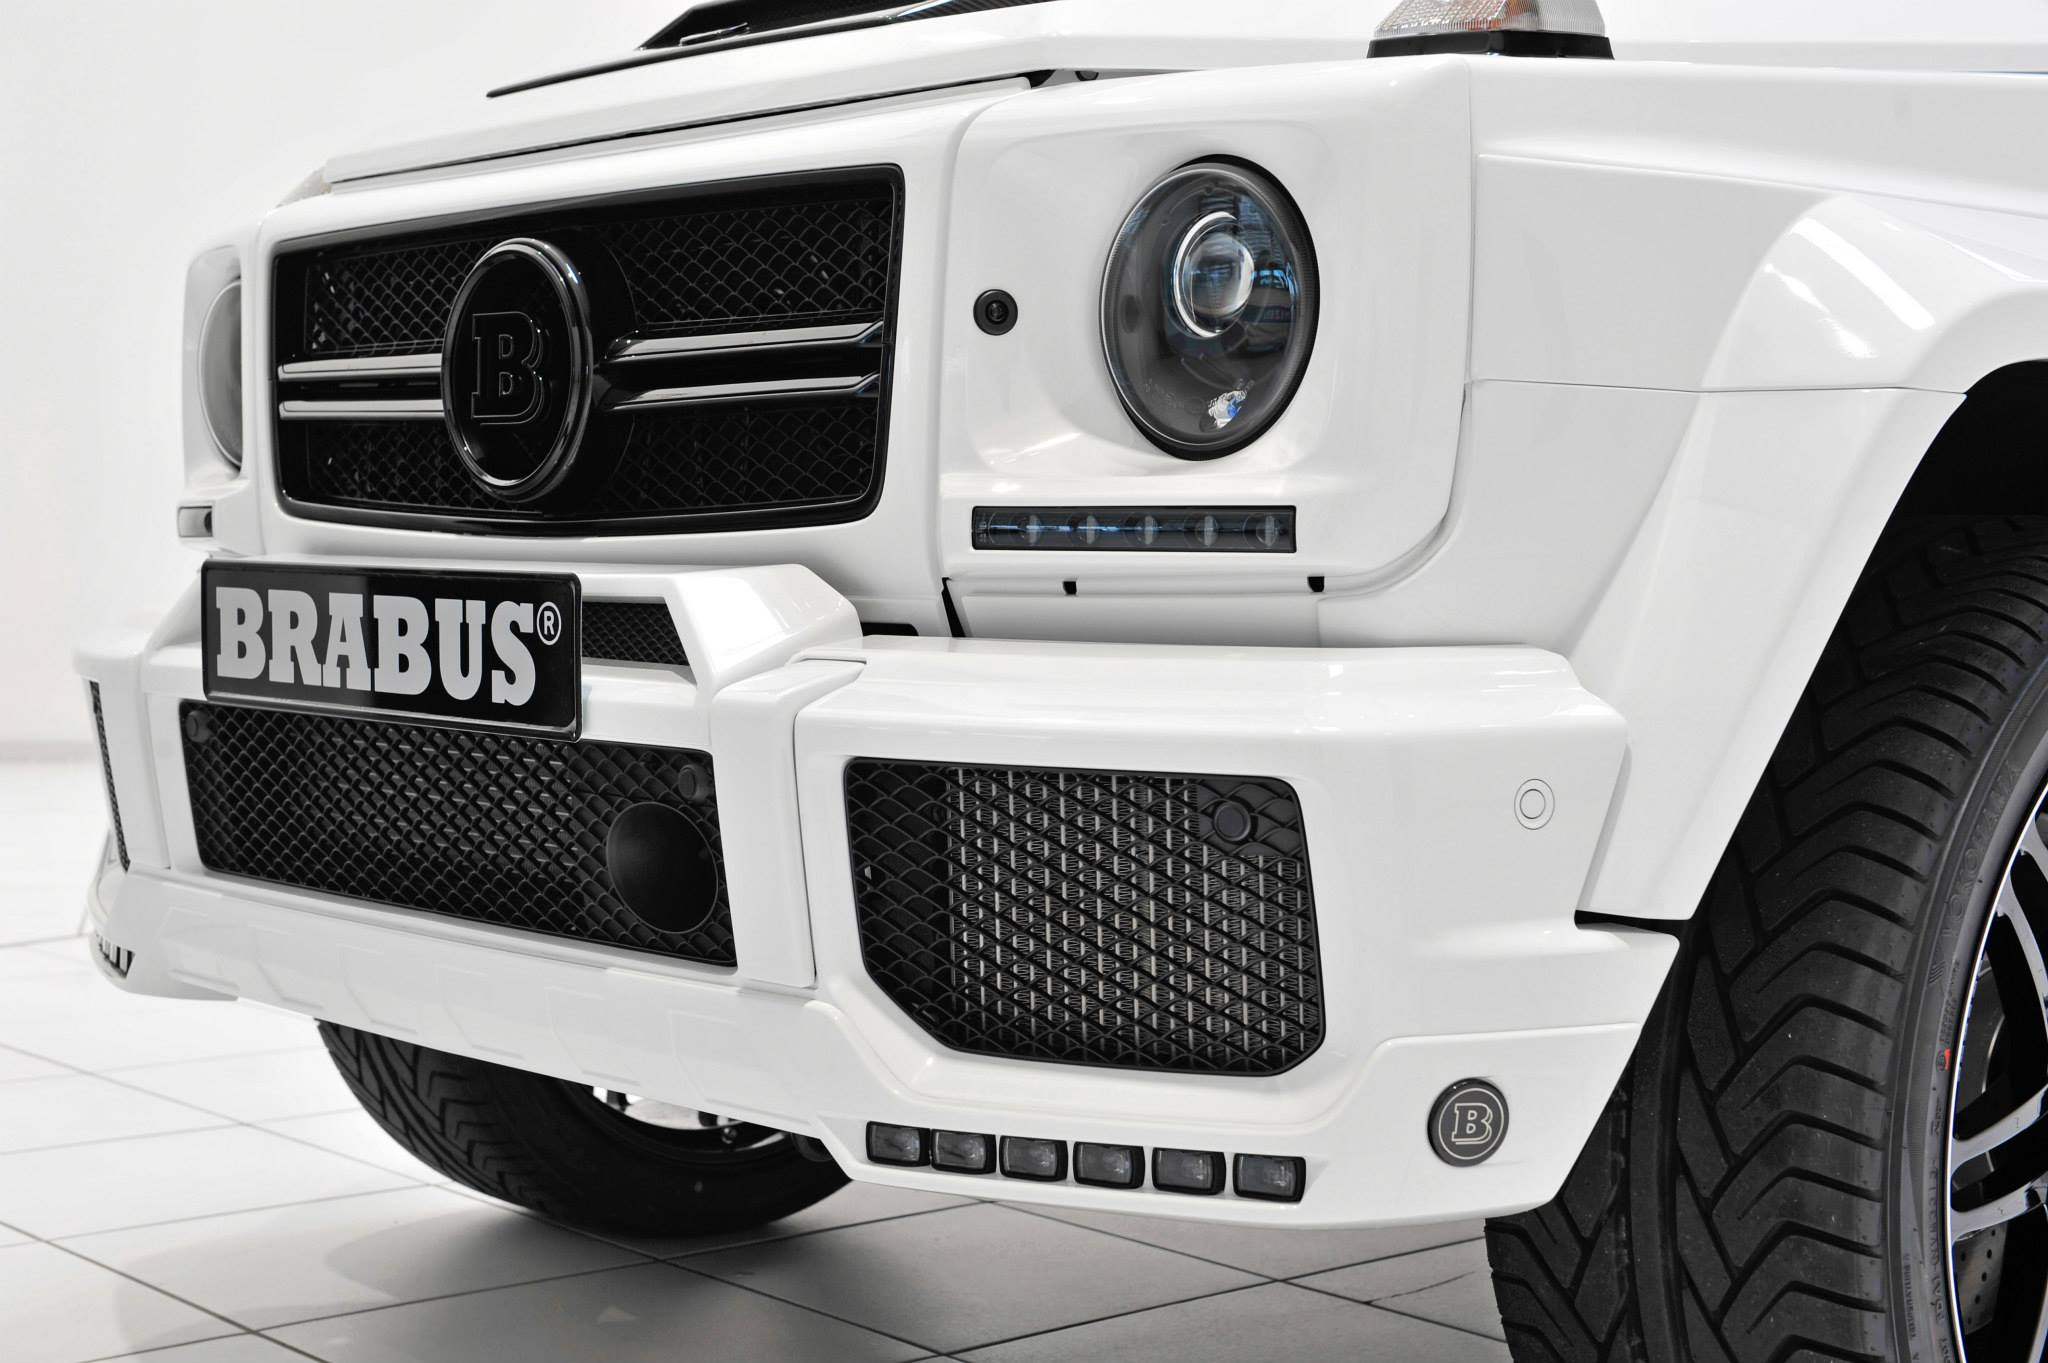 Brabus 700 Puts A Stormtrooper Look On The G63 Amg